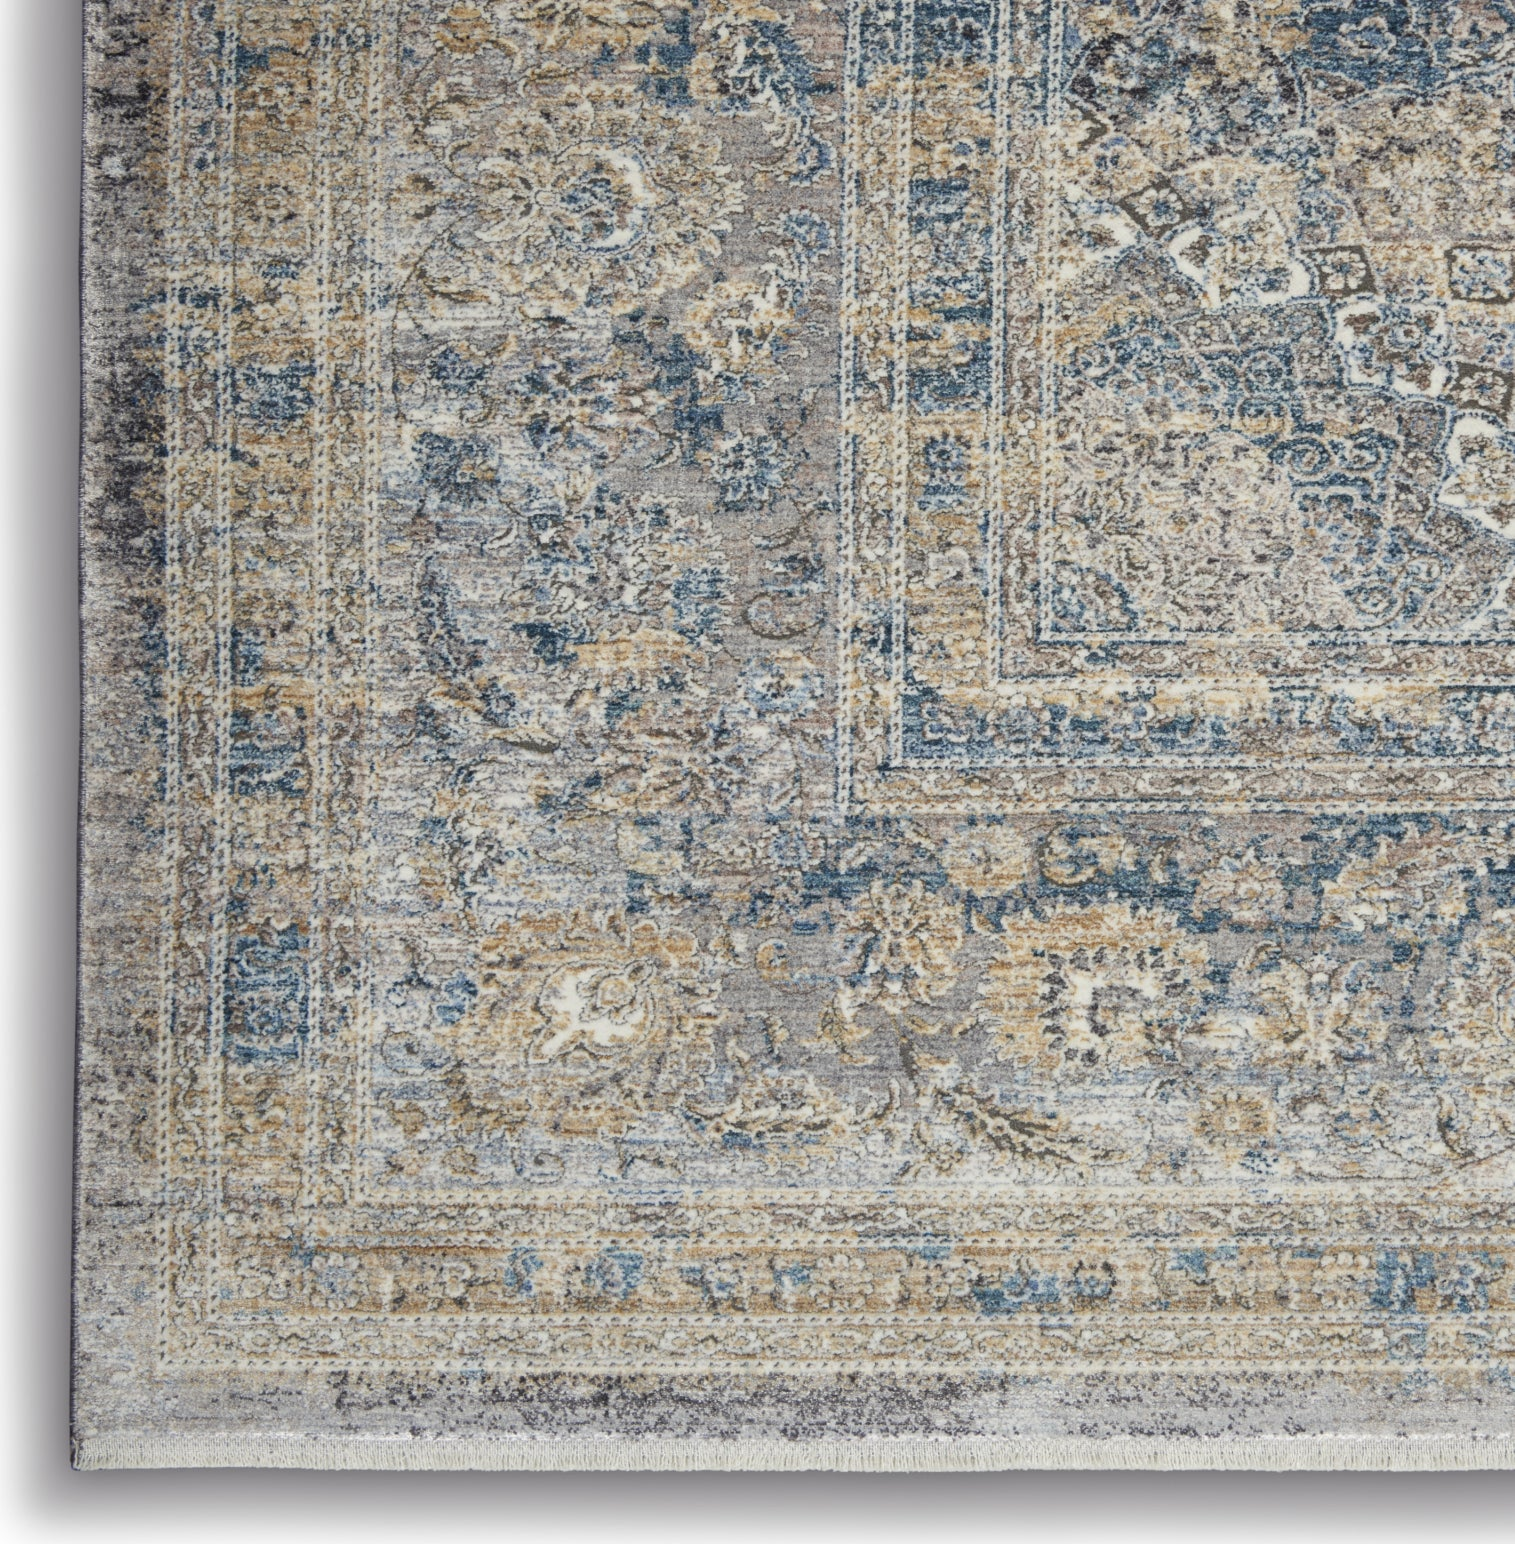 Starry Nights STN06 Cream Blue Area Rug by Nourison Corner Image